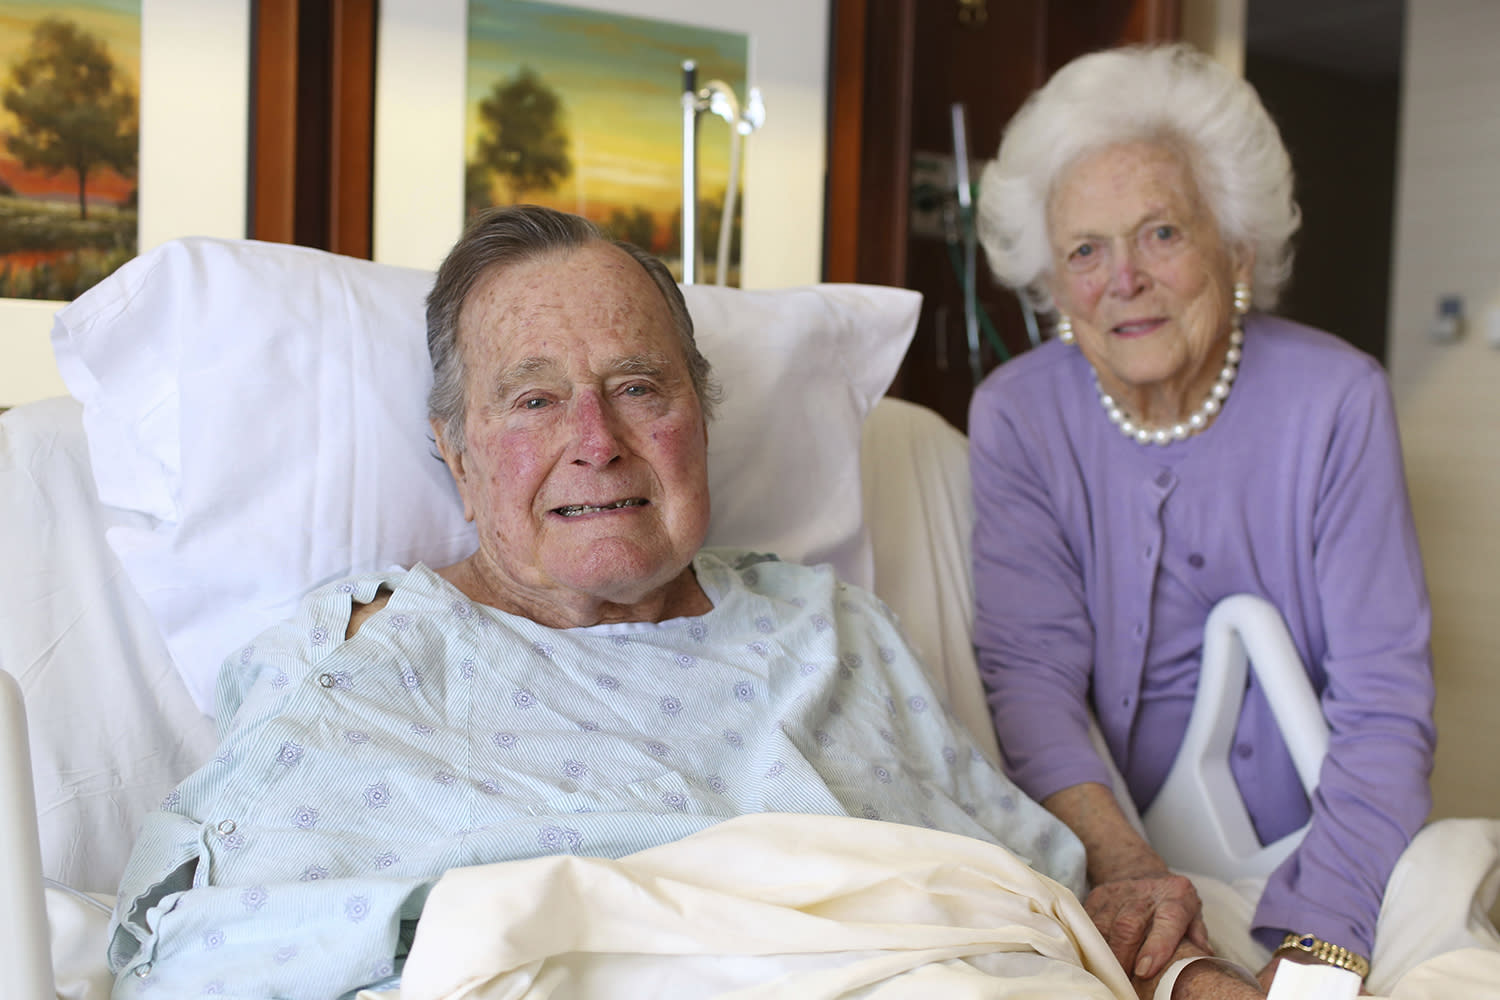 Former President George H.W. Bush and his wife Barbara pose for a photo at Houston Methodist Hospital in Houston. The 92-year-old former president is still suffering from pneumonia, but is well enough to leave the intensive care unit at a Houston hospital, doctors said Monday. His wife, Barbara, has been discharged from the same facility after completing treatment for bronchitis. (Courtesy the Office of George H.W. Bush via AP)